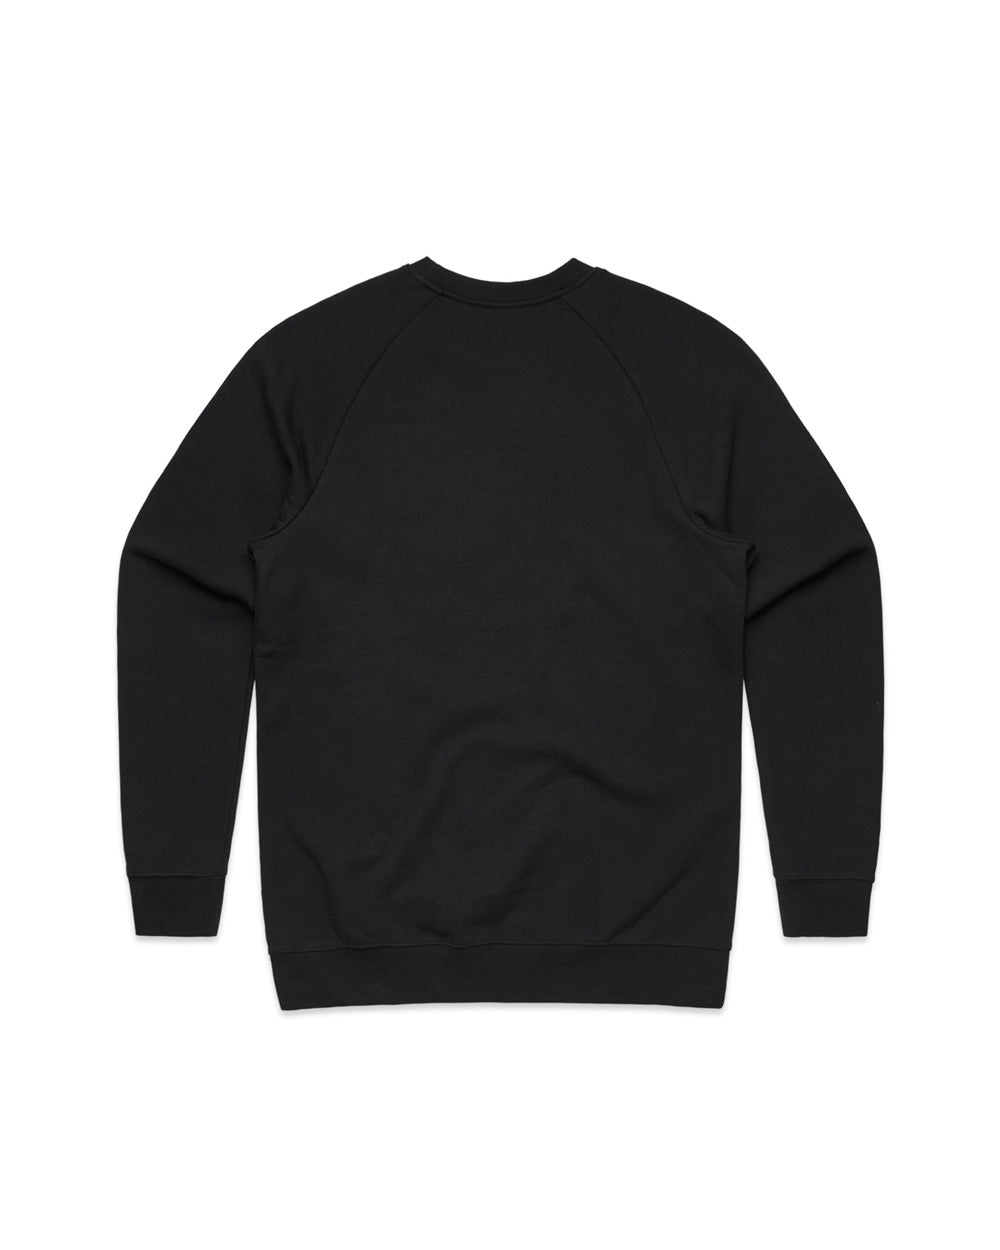 Finshui Shuuui Black Crew - Threadbox